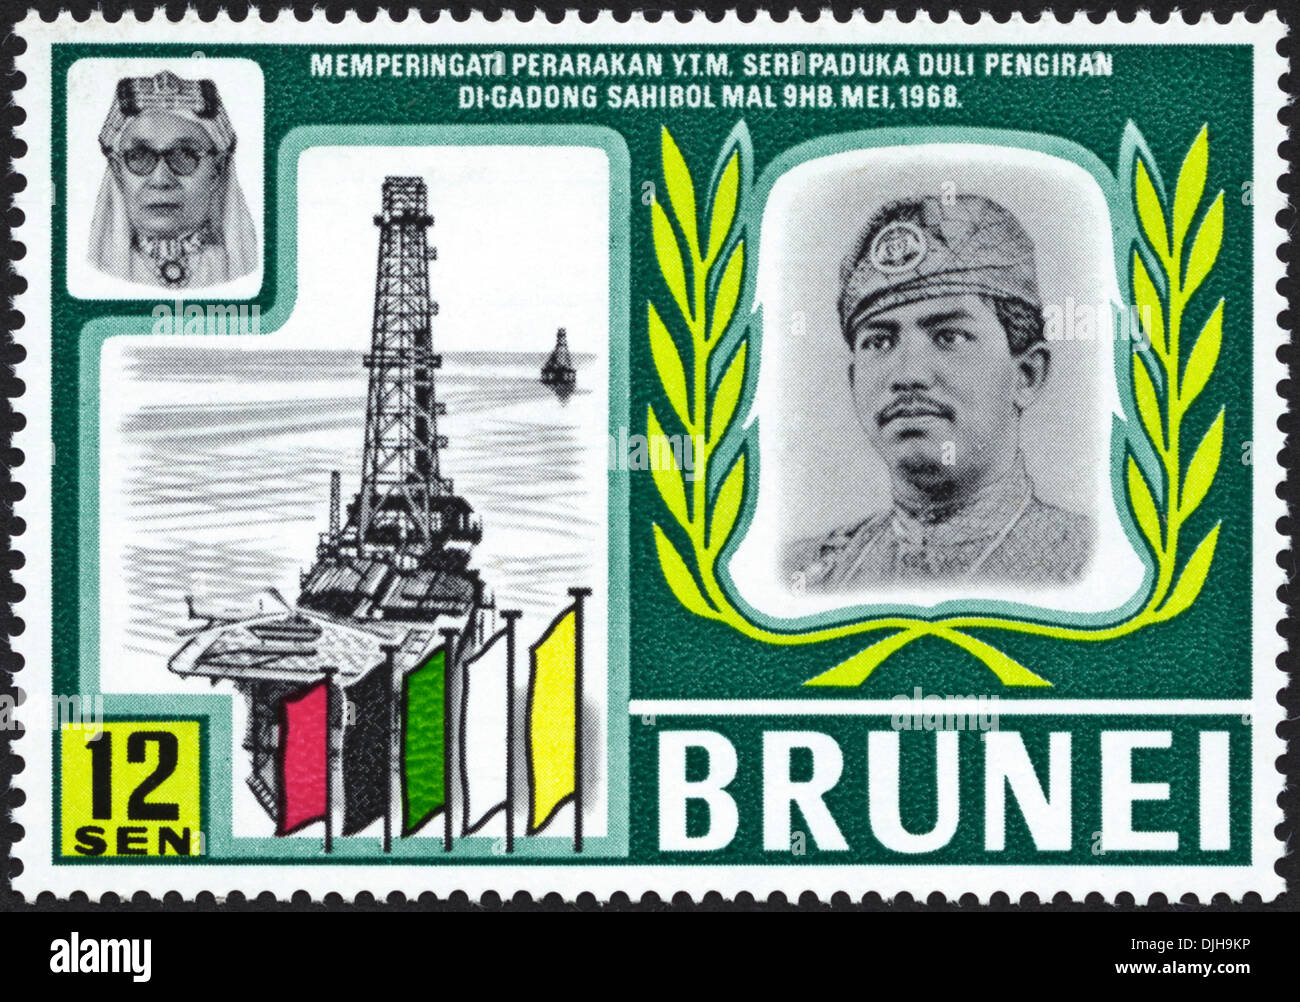 postage stamp Brunei 12 Sen featuring oil drilling platform issued 1969 - Stock Image